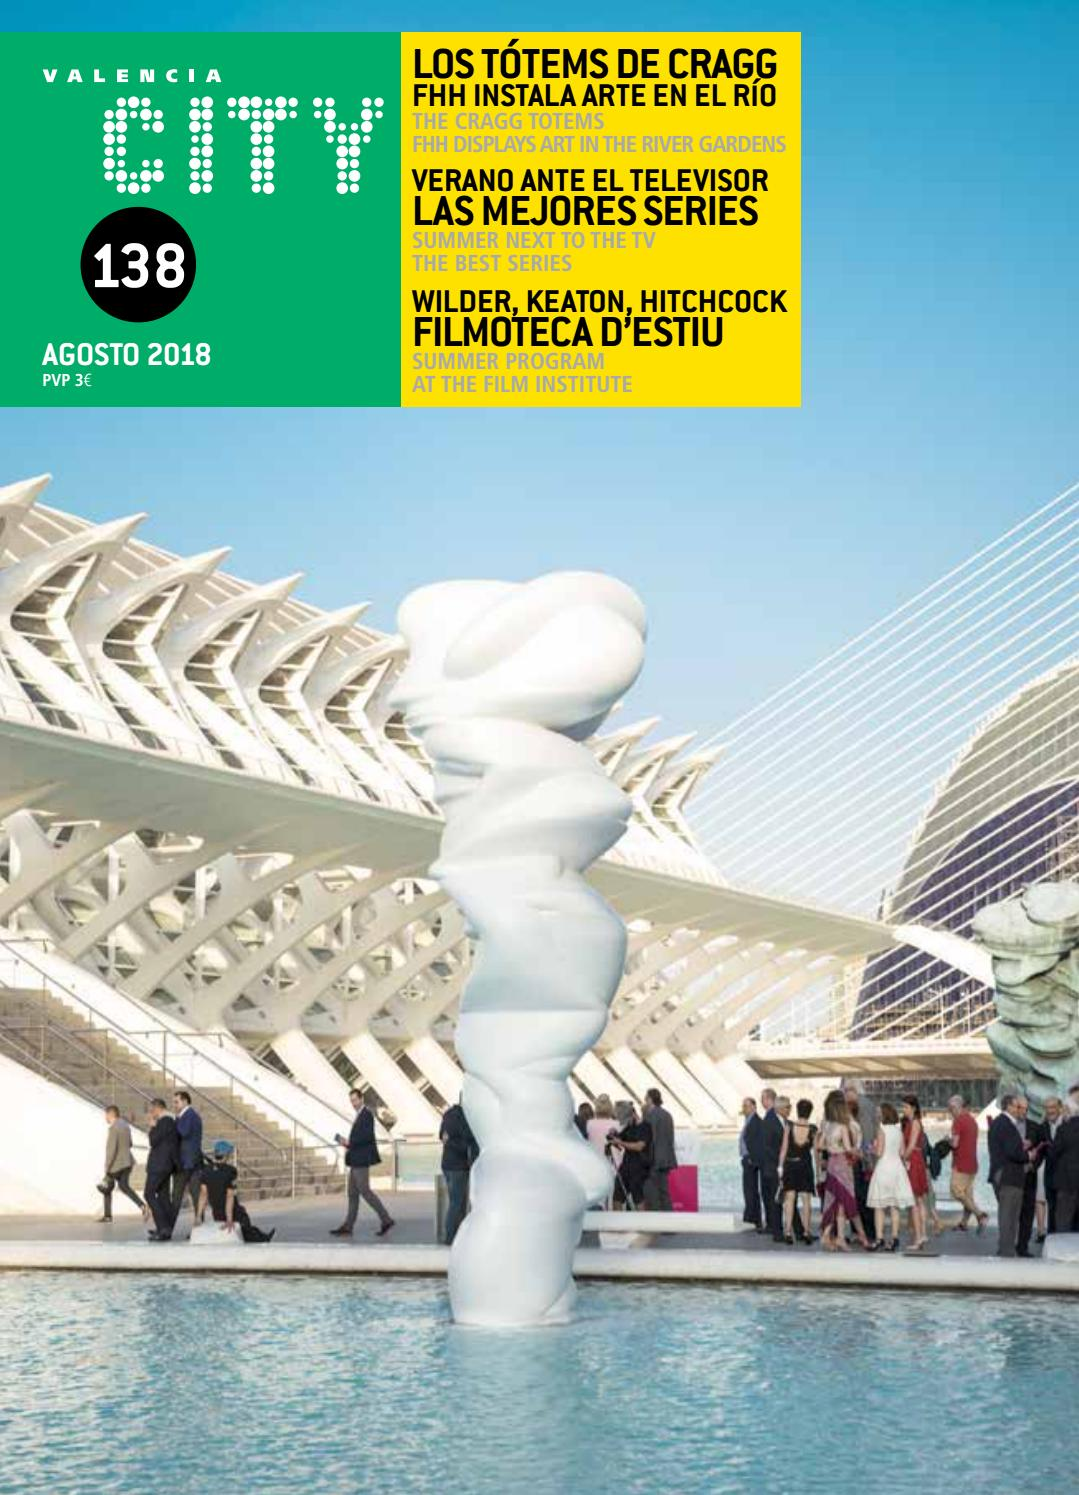 Valencia City agosto 2018 by Valencia City issuu